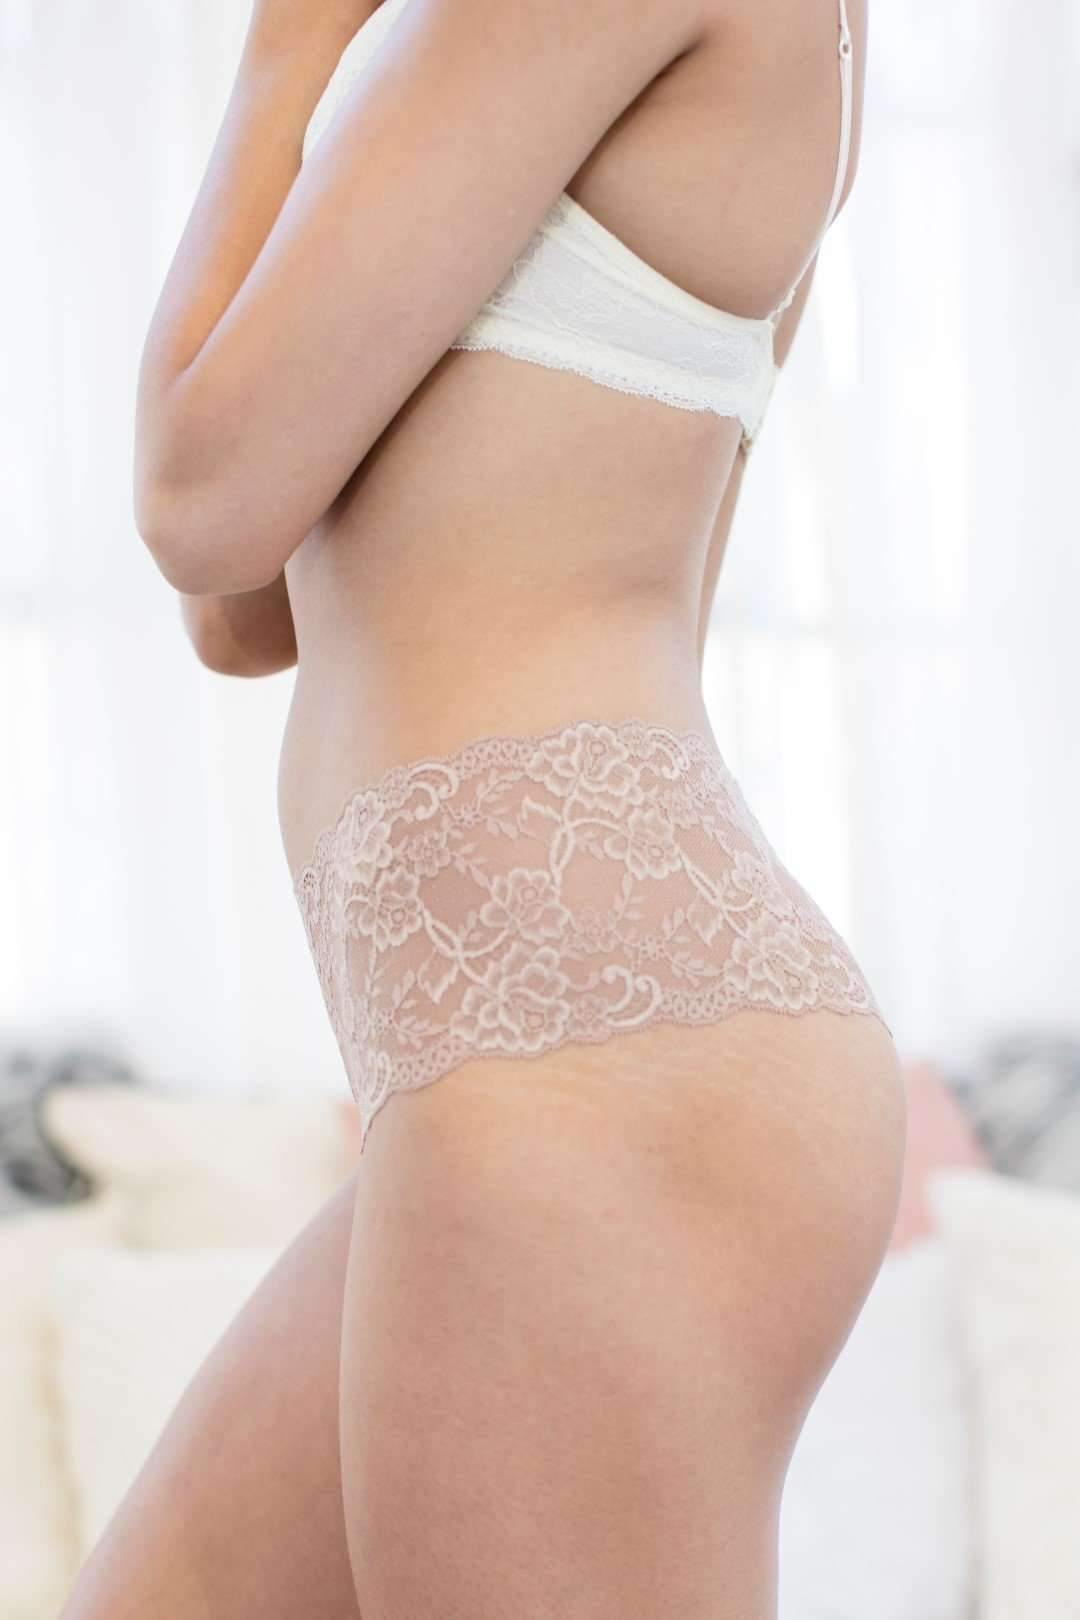 Lady In Lace Thong-Honeydew Intimates-Suntan-Small-Honeydew Intimates